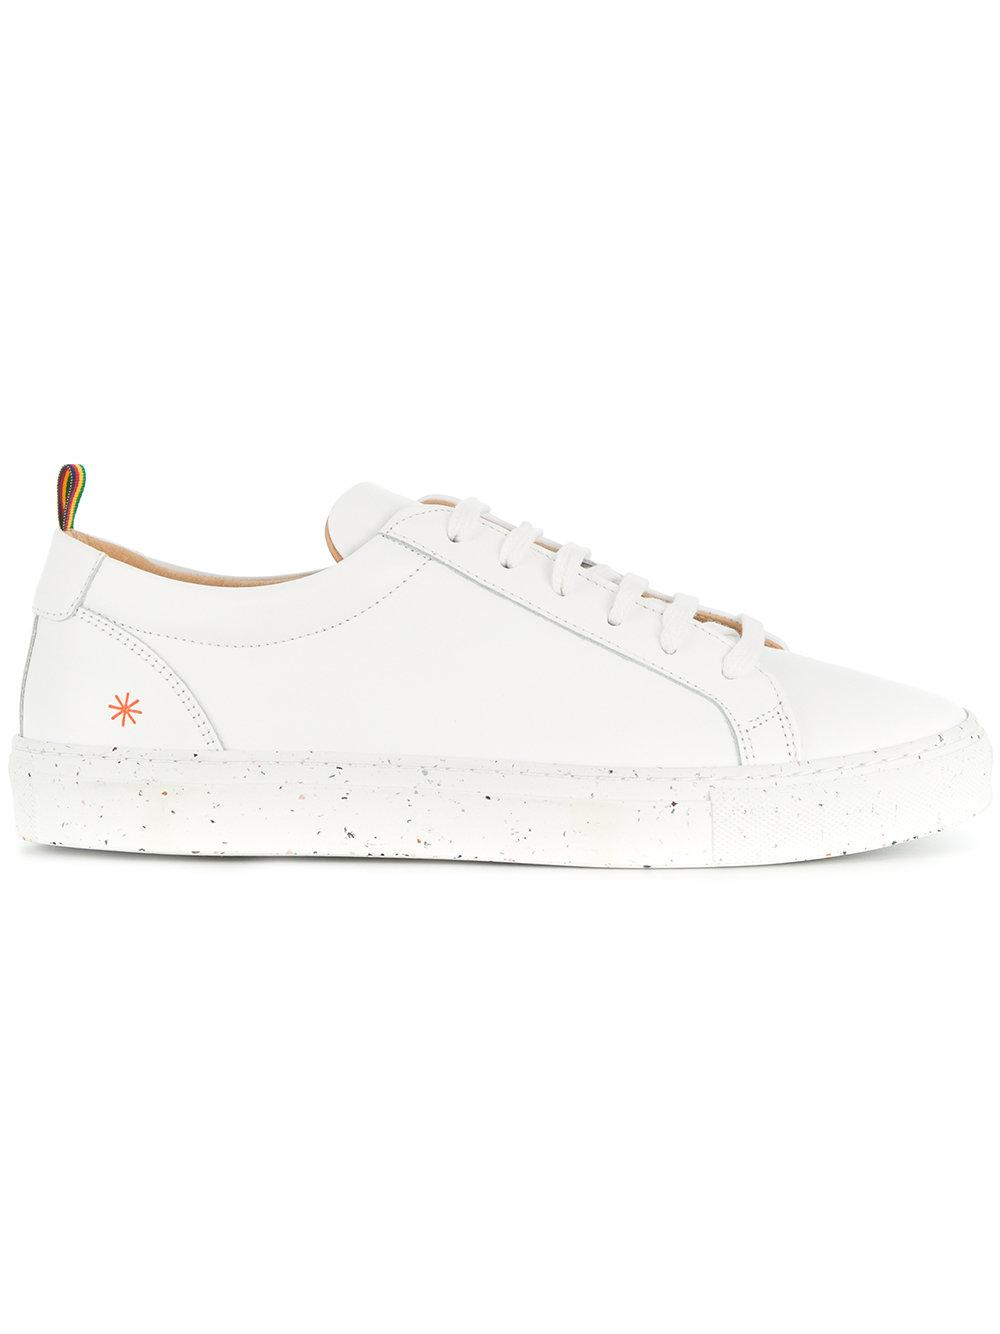 Manuel Ritz Lace Up Sneakers